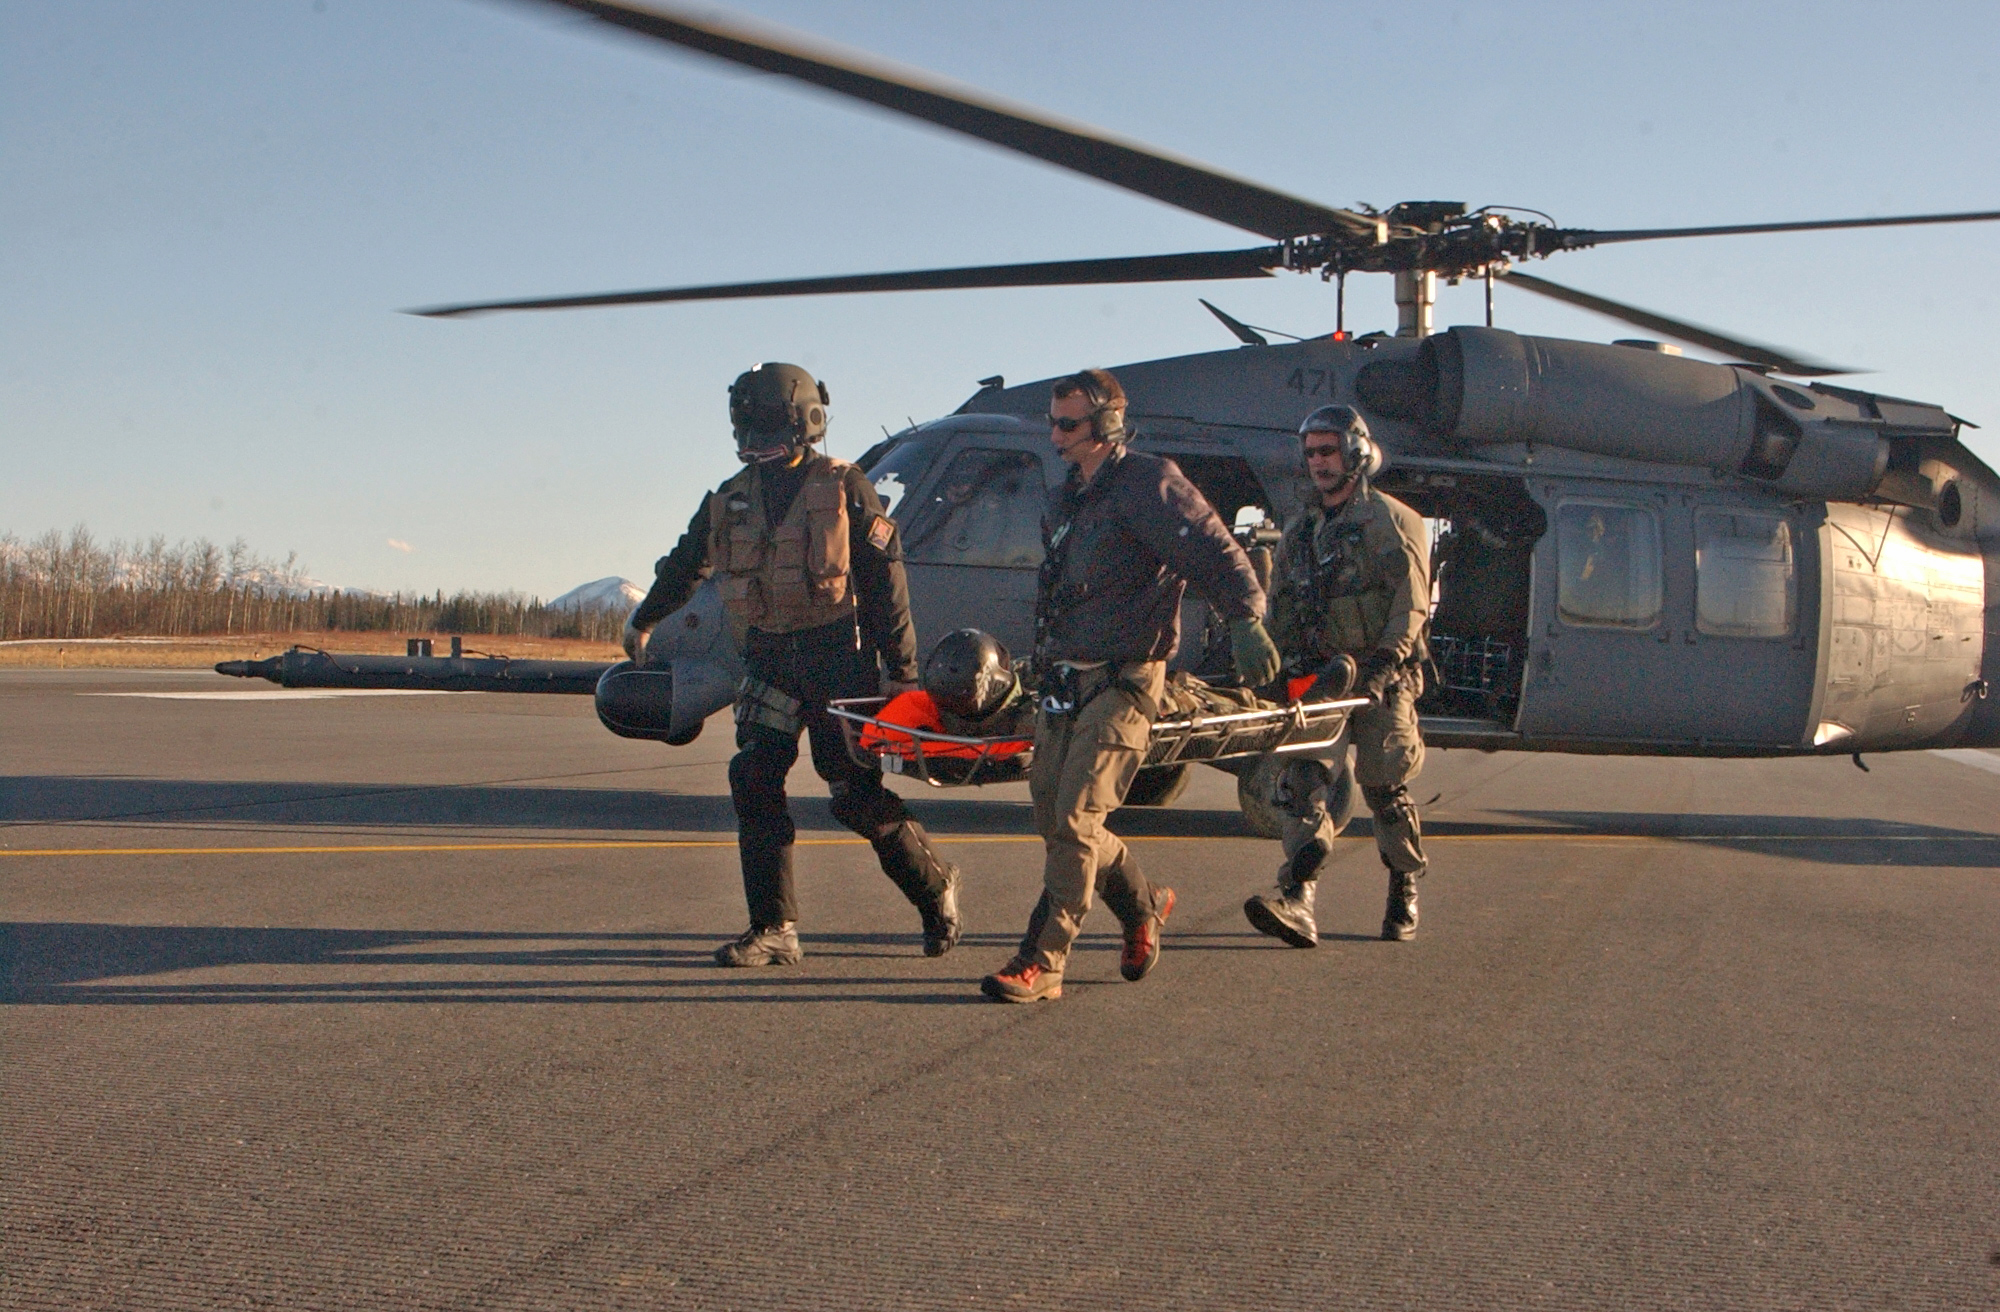 Air force aerial gunner bases of dating. Dating for one night.